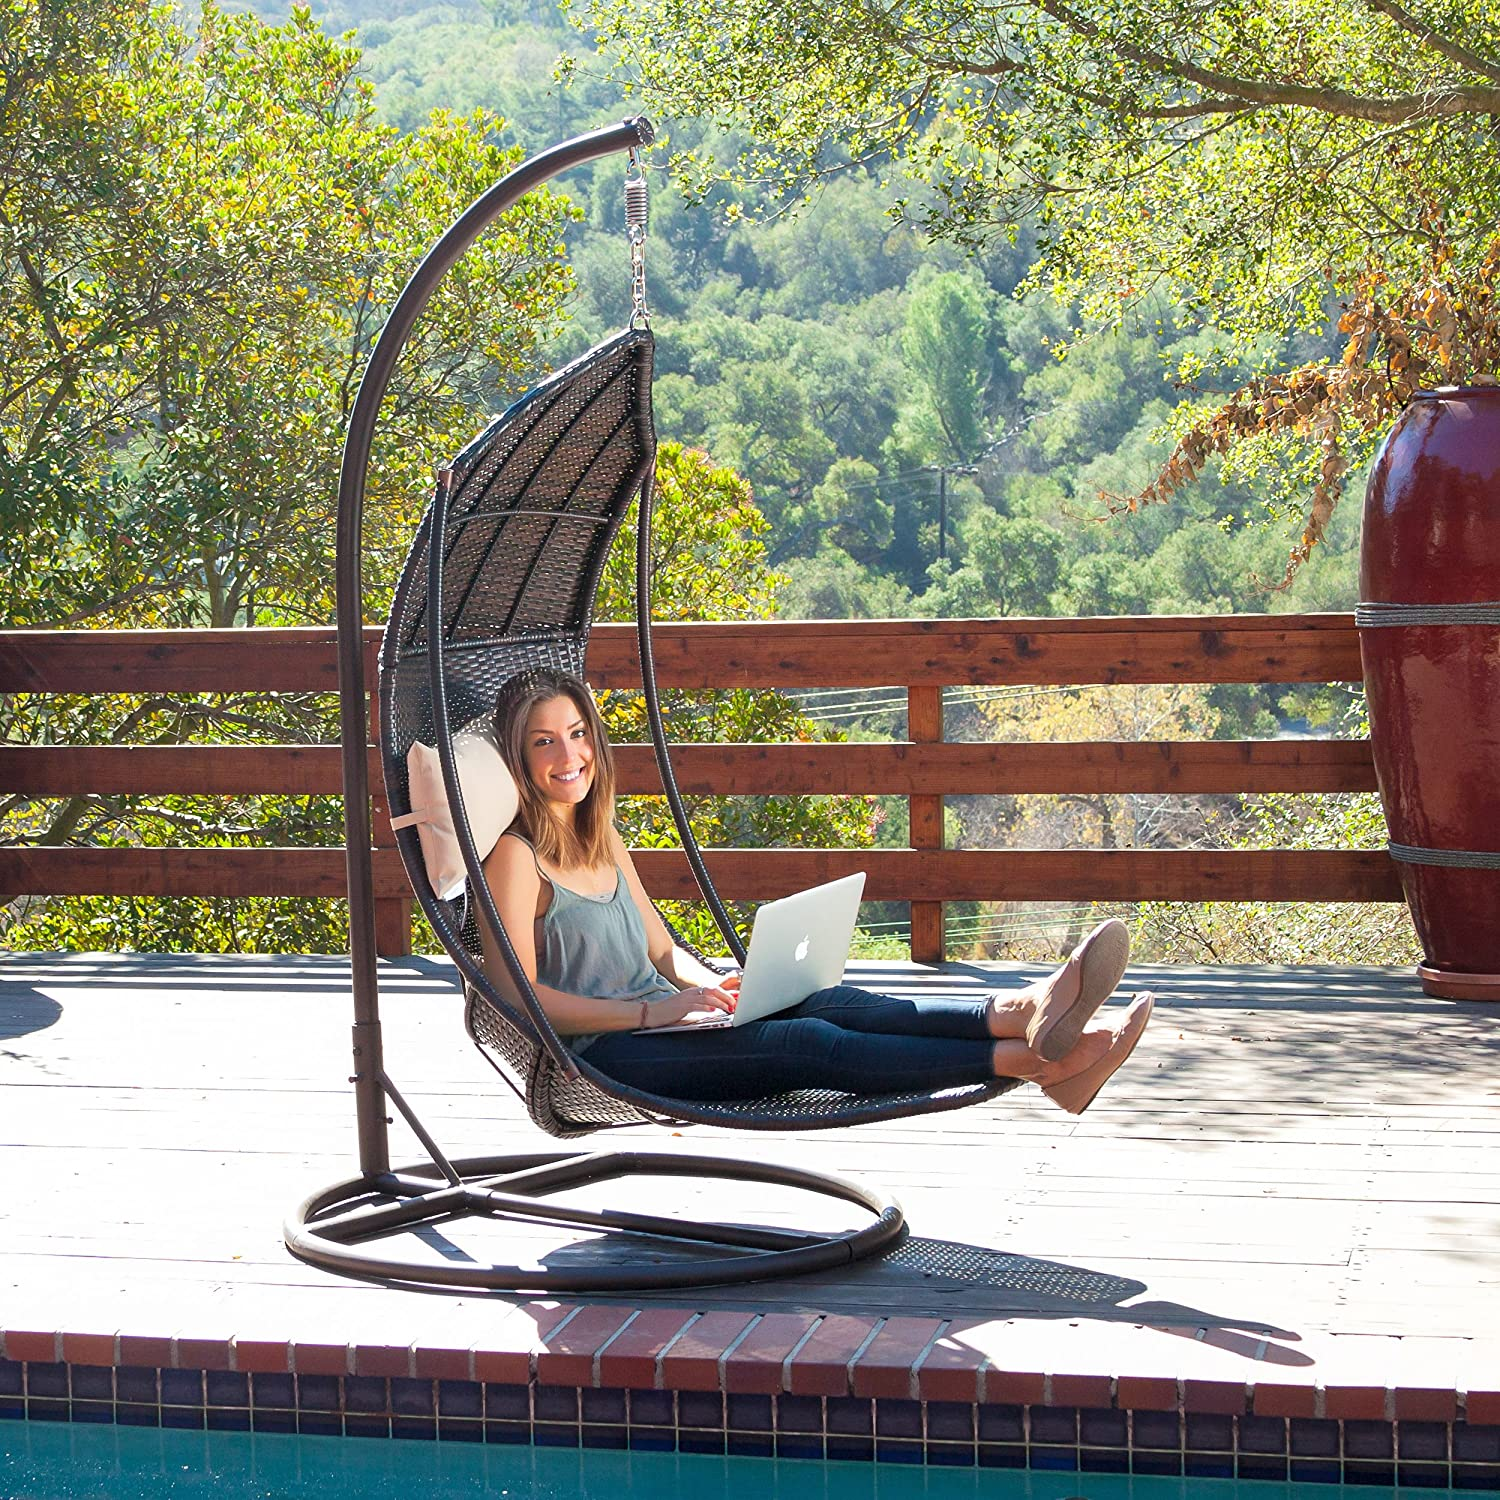 Charmant Amazon.com : Outdoor Brown Wicker Hanging Chair With Cushions : Garden U0026  Outdoor